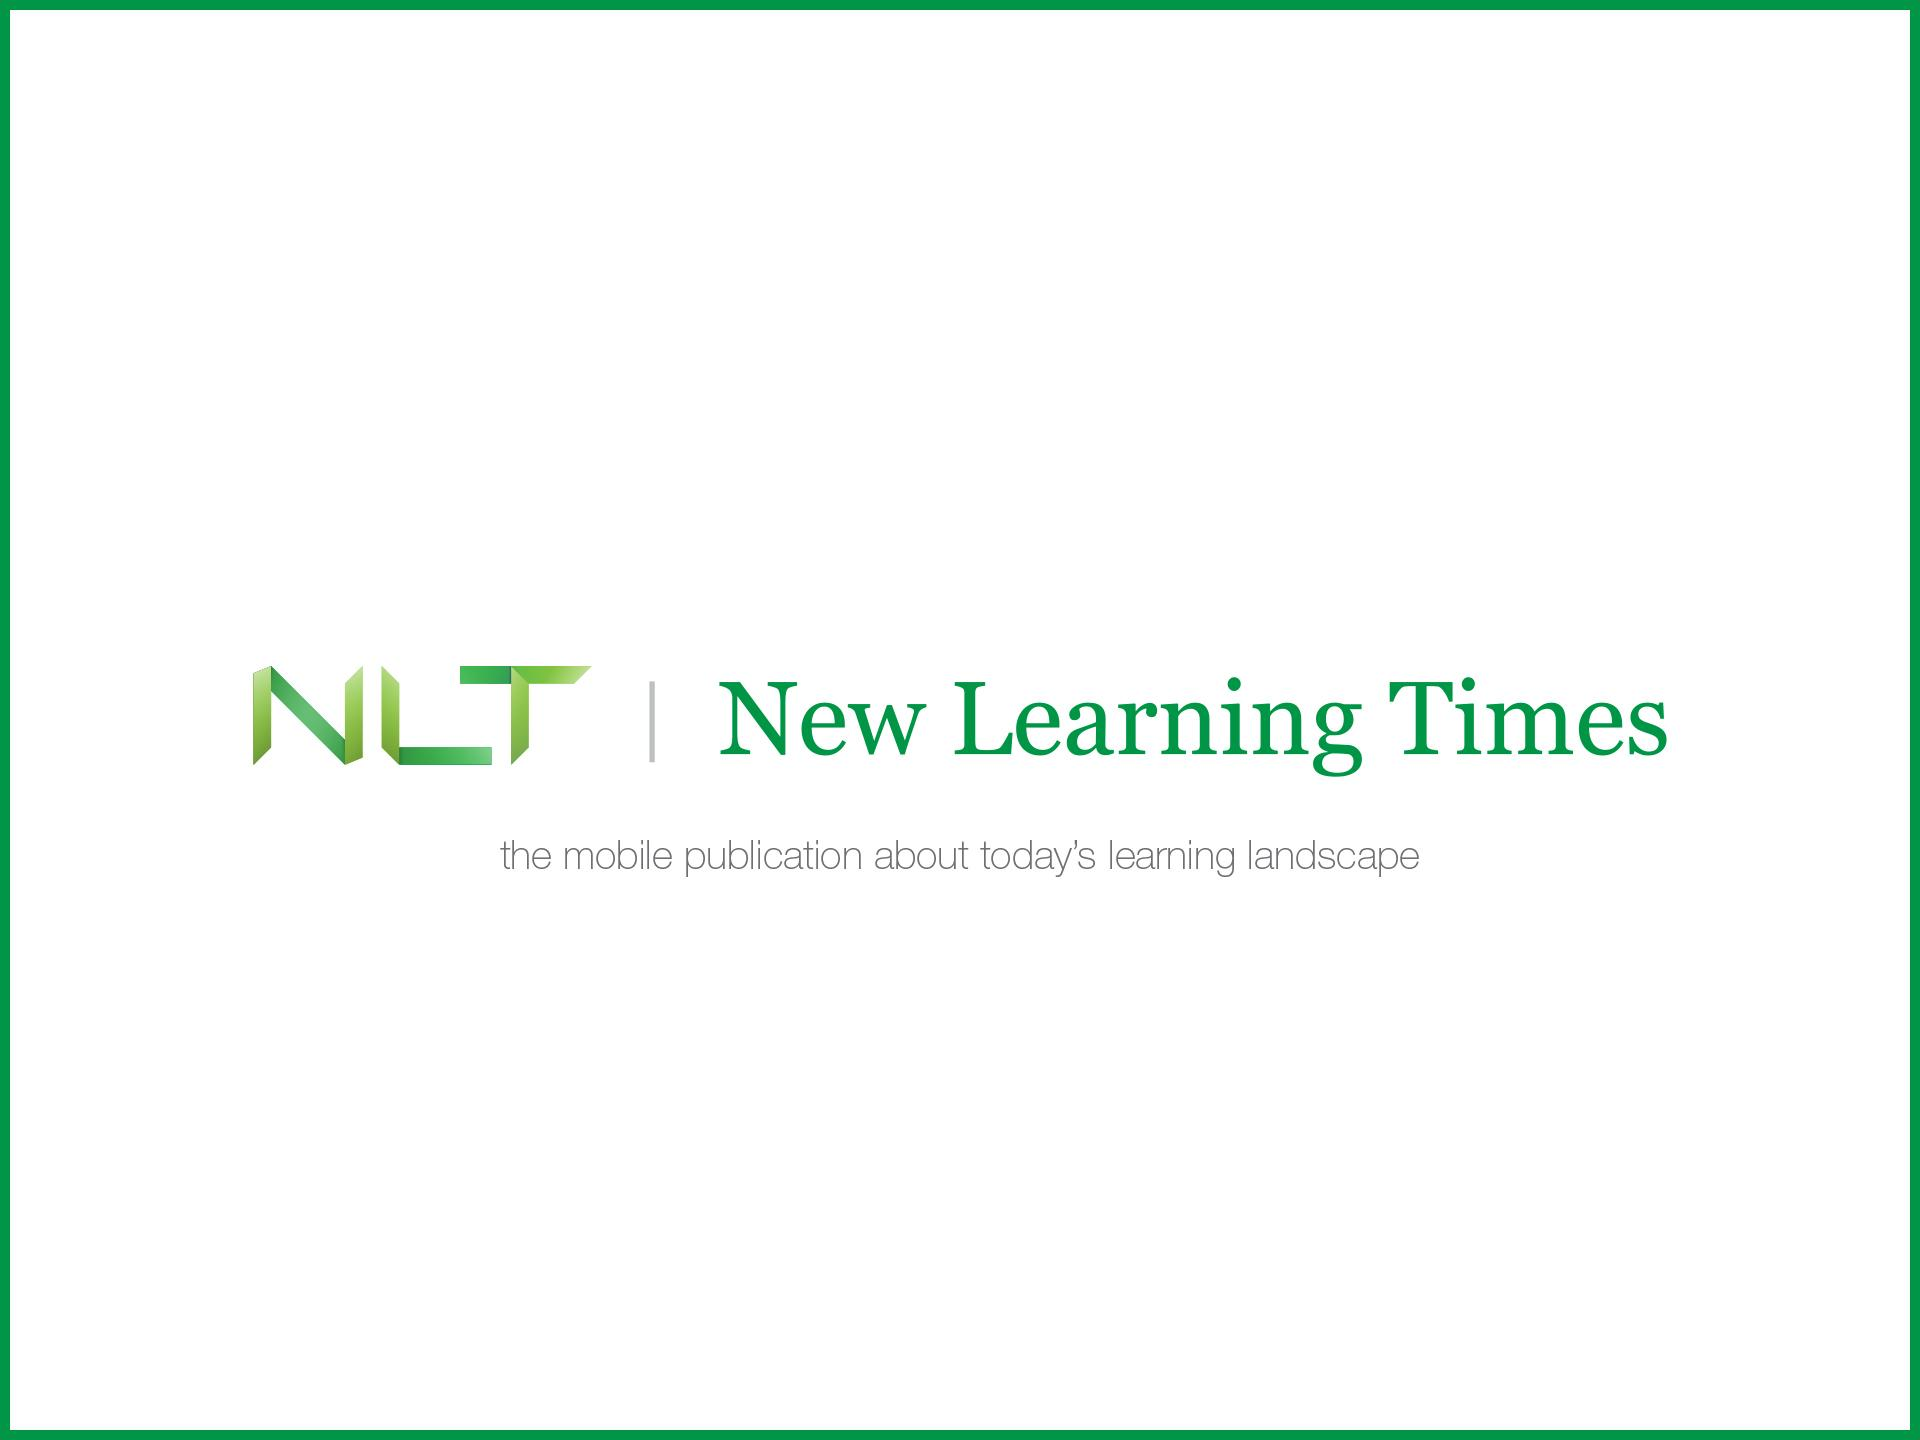 New Learning Times